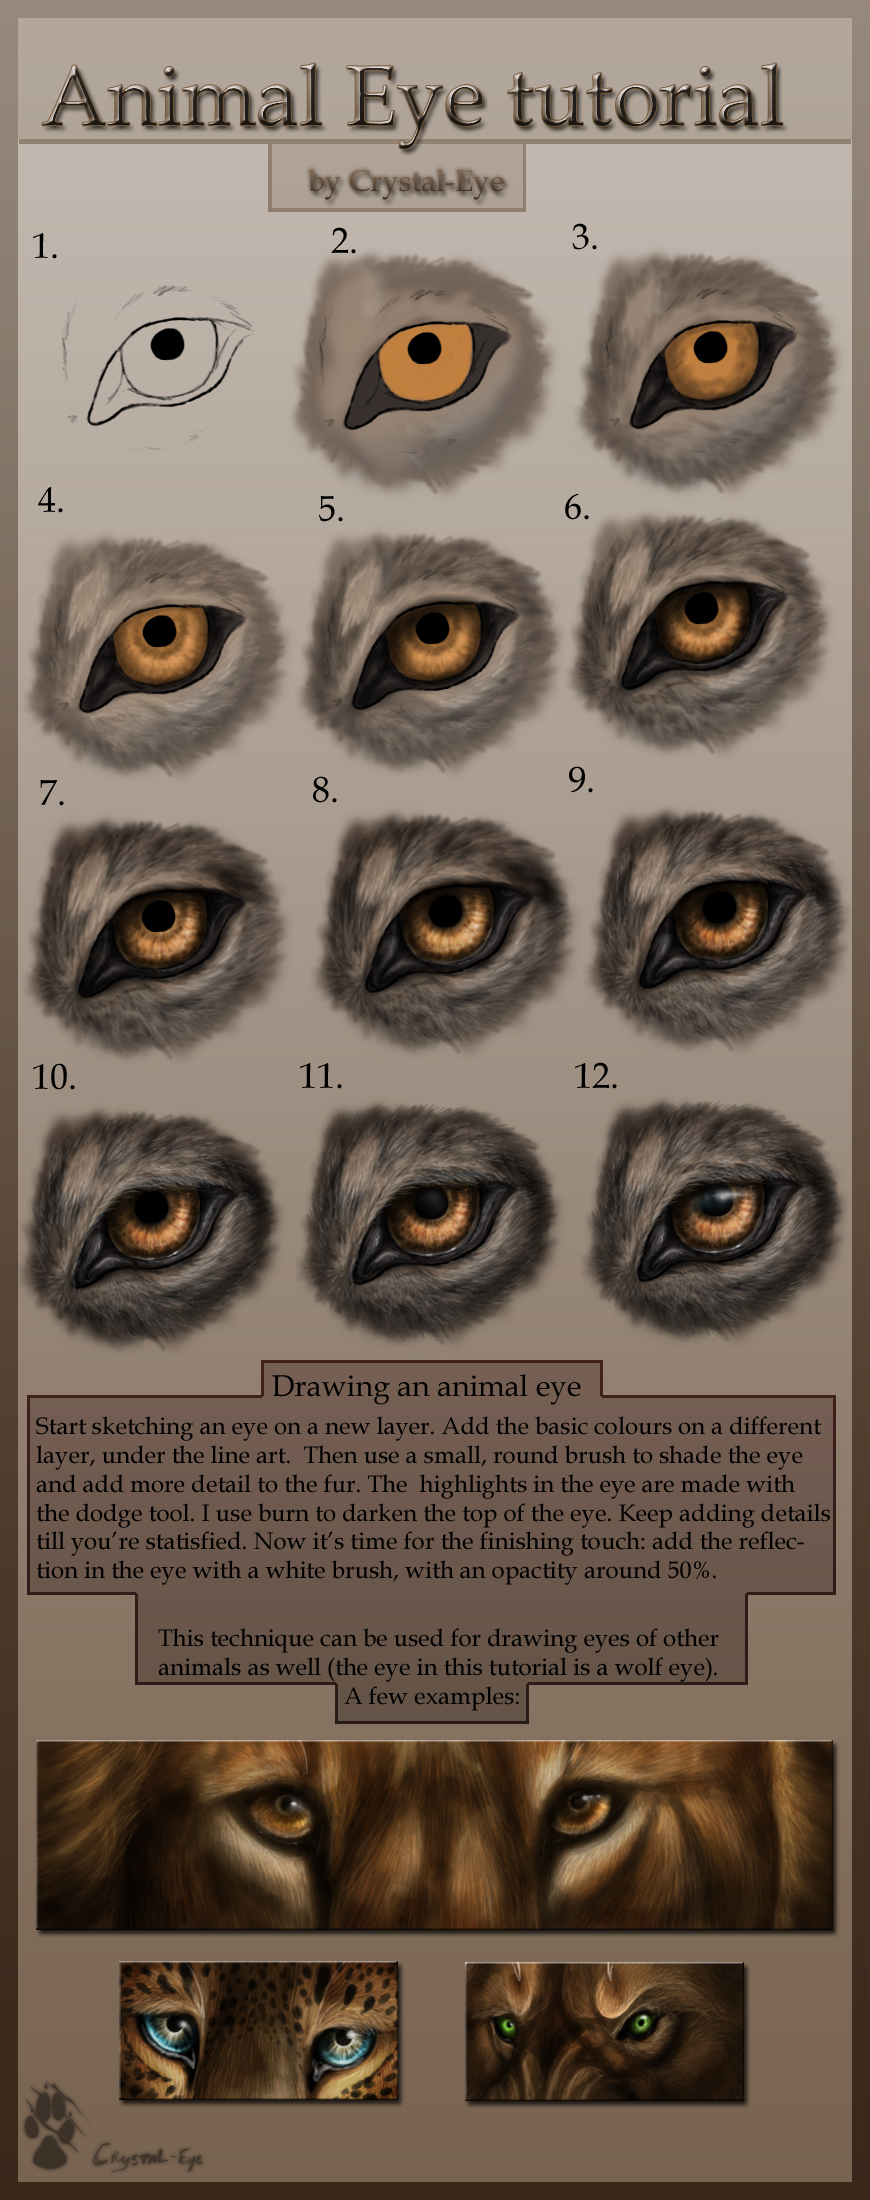 http://fc09.deviantart.net/fs37/f/2008/250/6/9/Animal_Eye_tutorial_by_Crystal_Eye.jpg